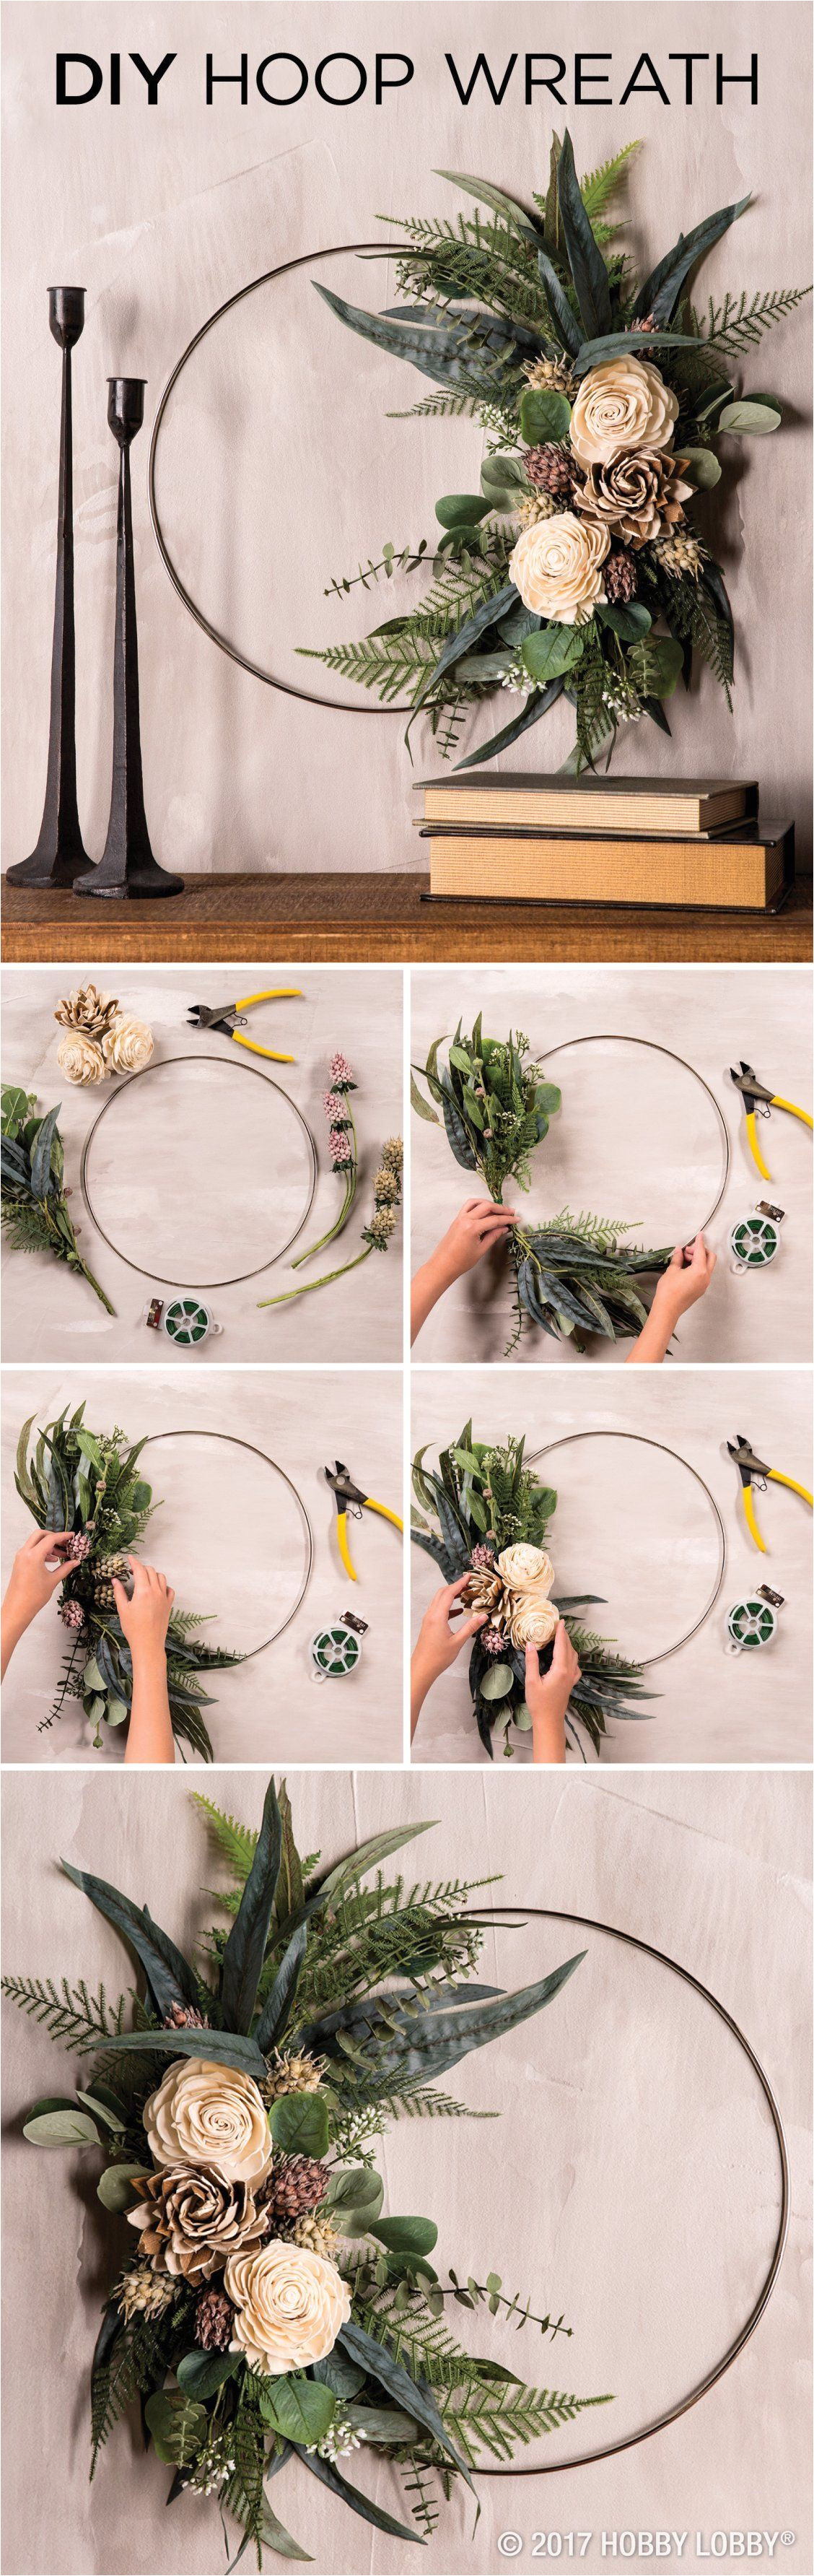 Advent Wreath Kits Hobby Lobby Elevate Any Space with An Elegant Diy Hoop Wreath to Diy 1 Clip